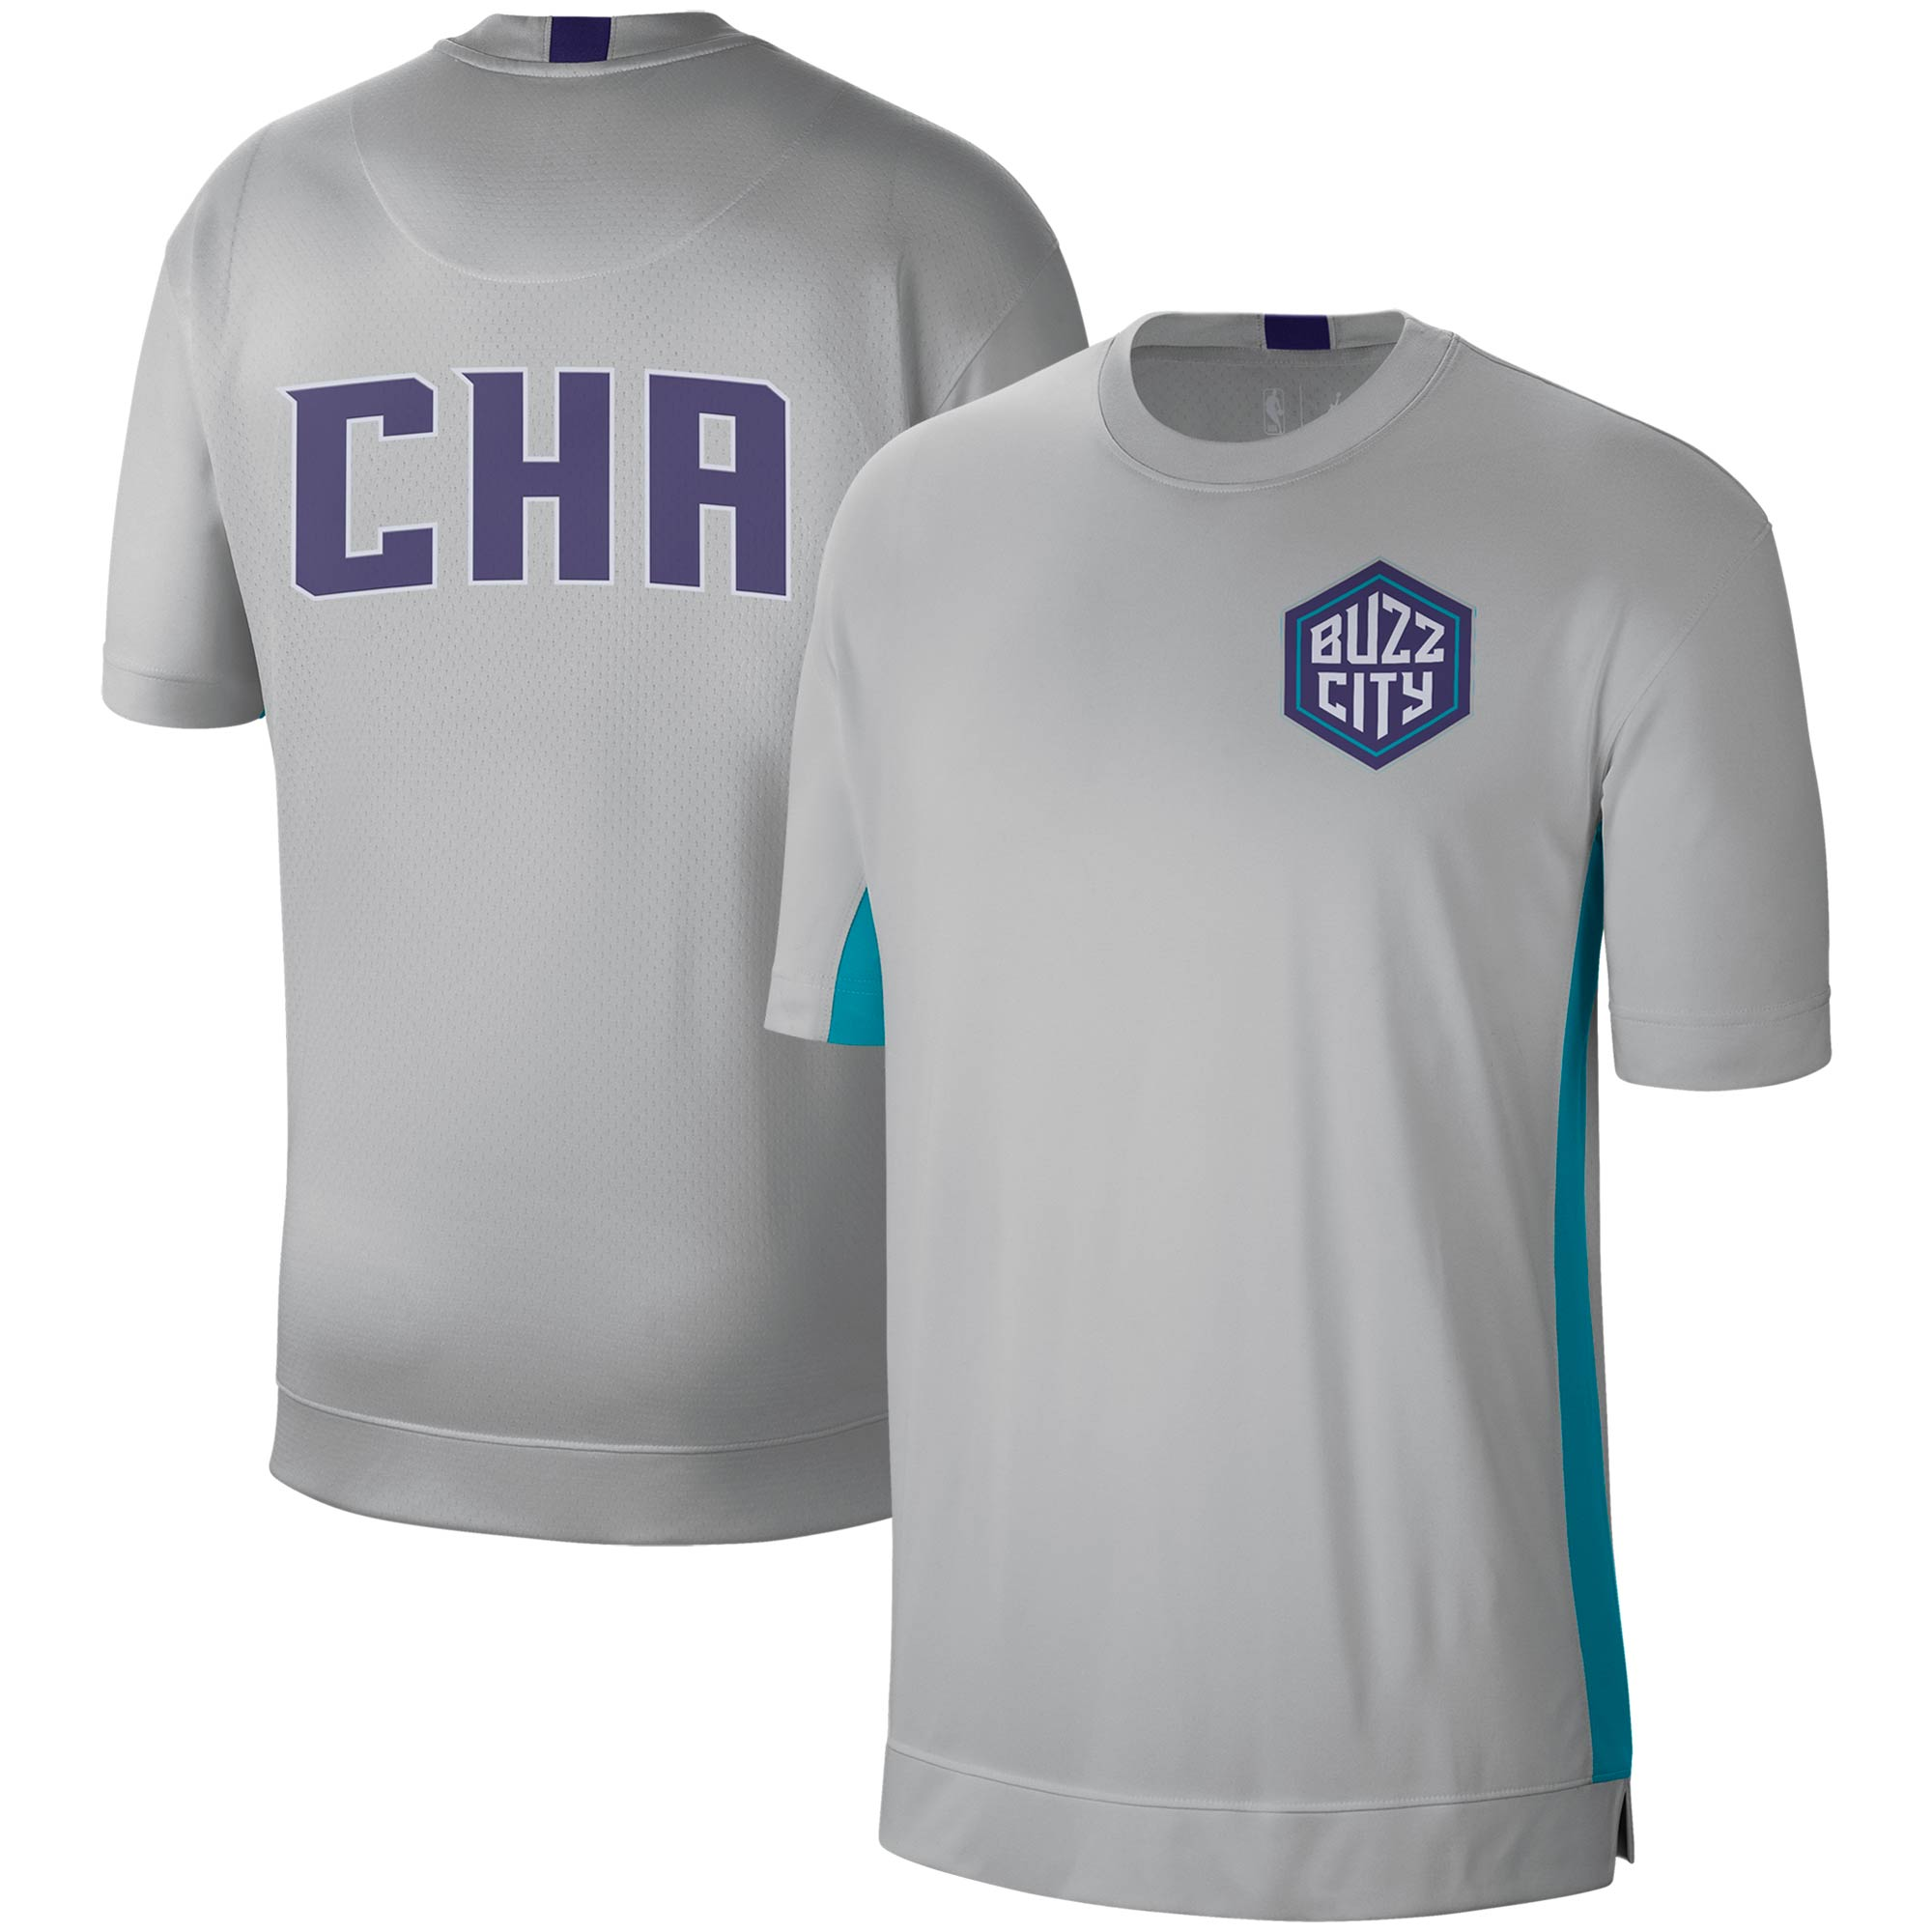 Charlotte Hornets Nike City Edition 2.0 Shooting Performance T-Shirt - Silver/Teal